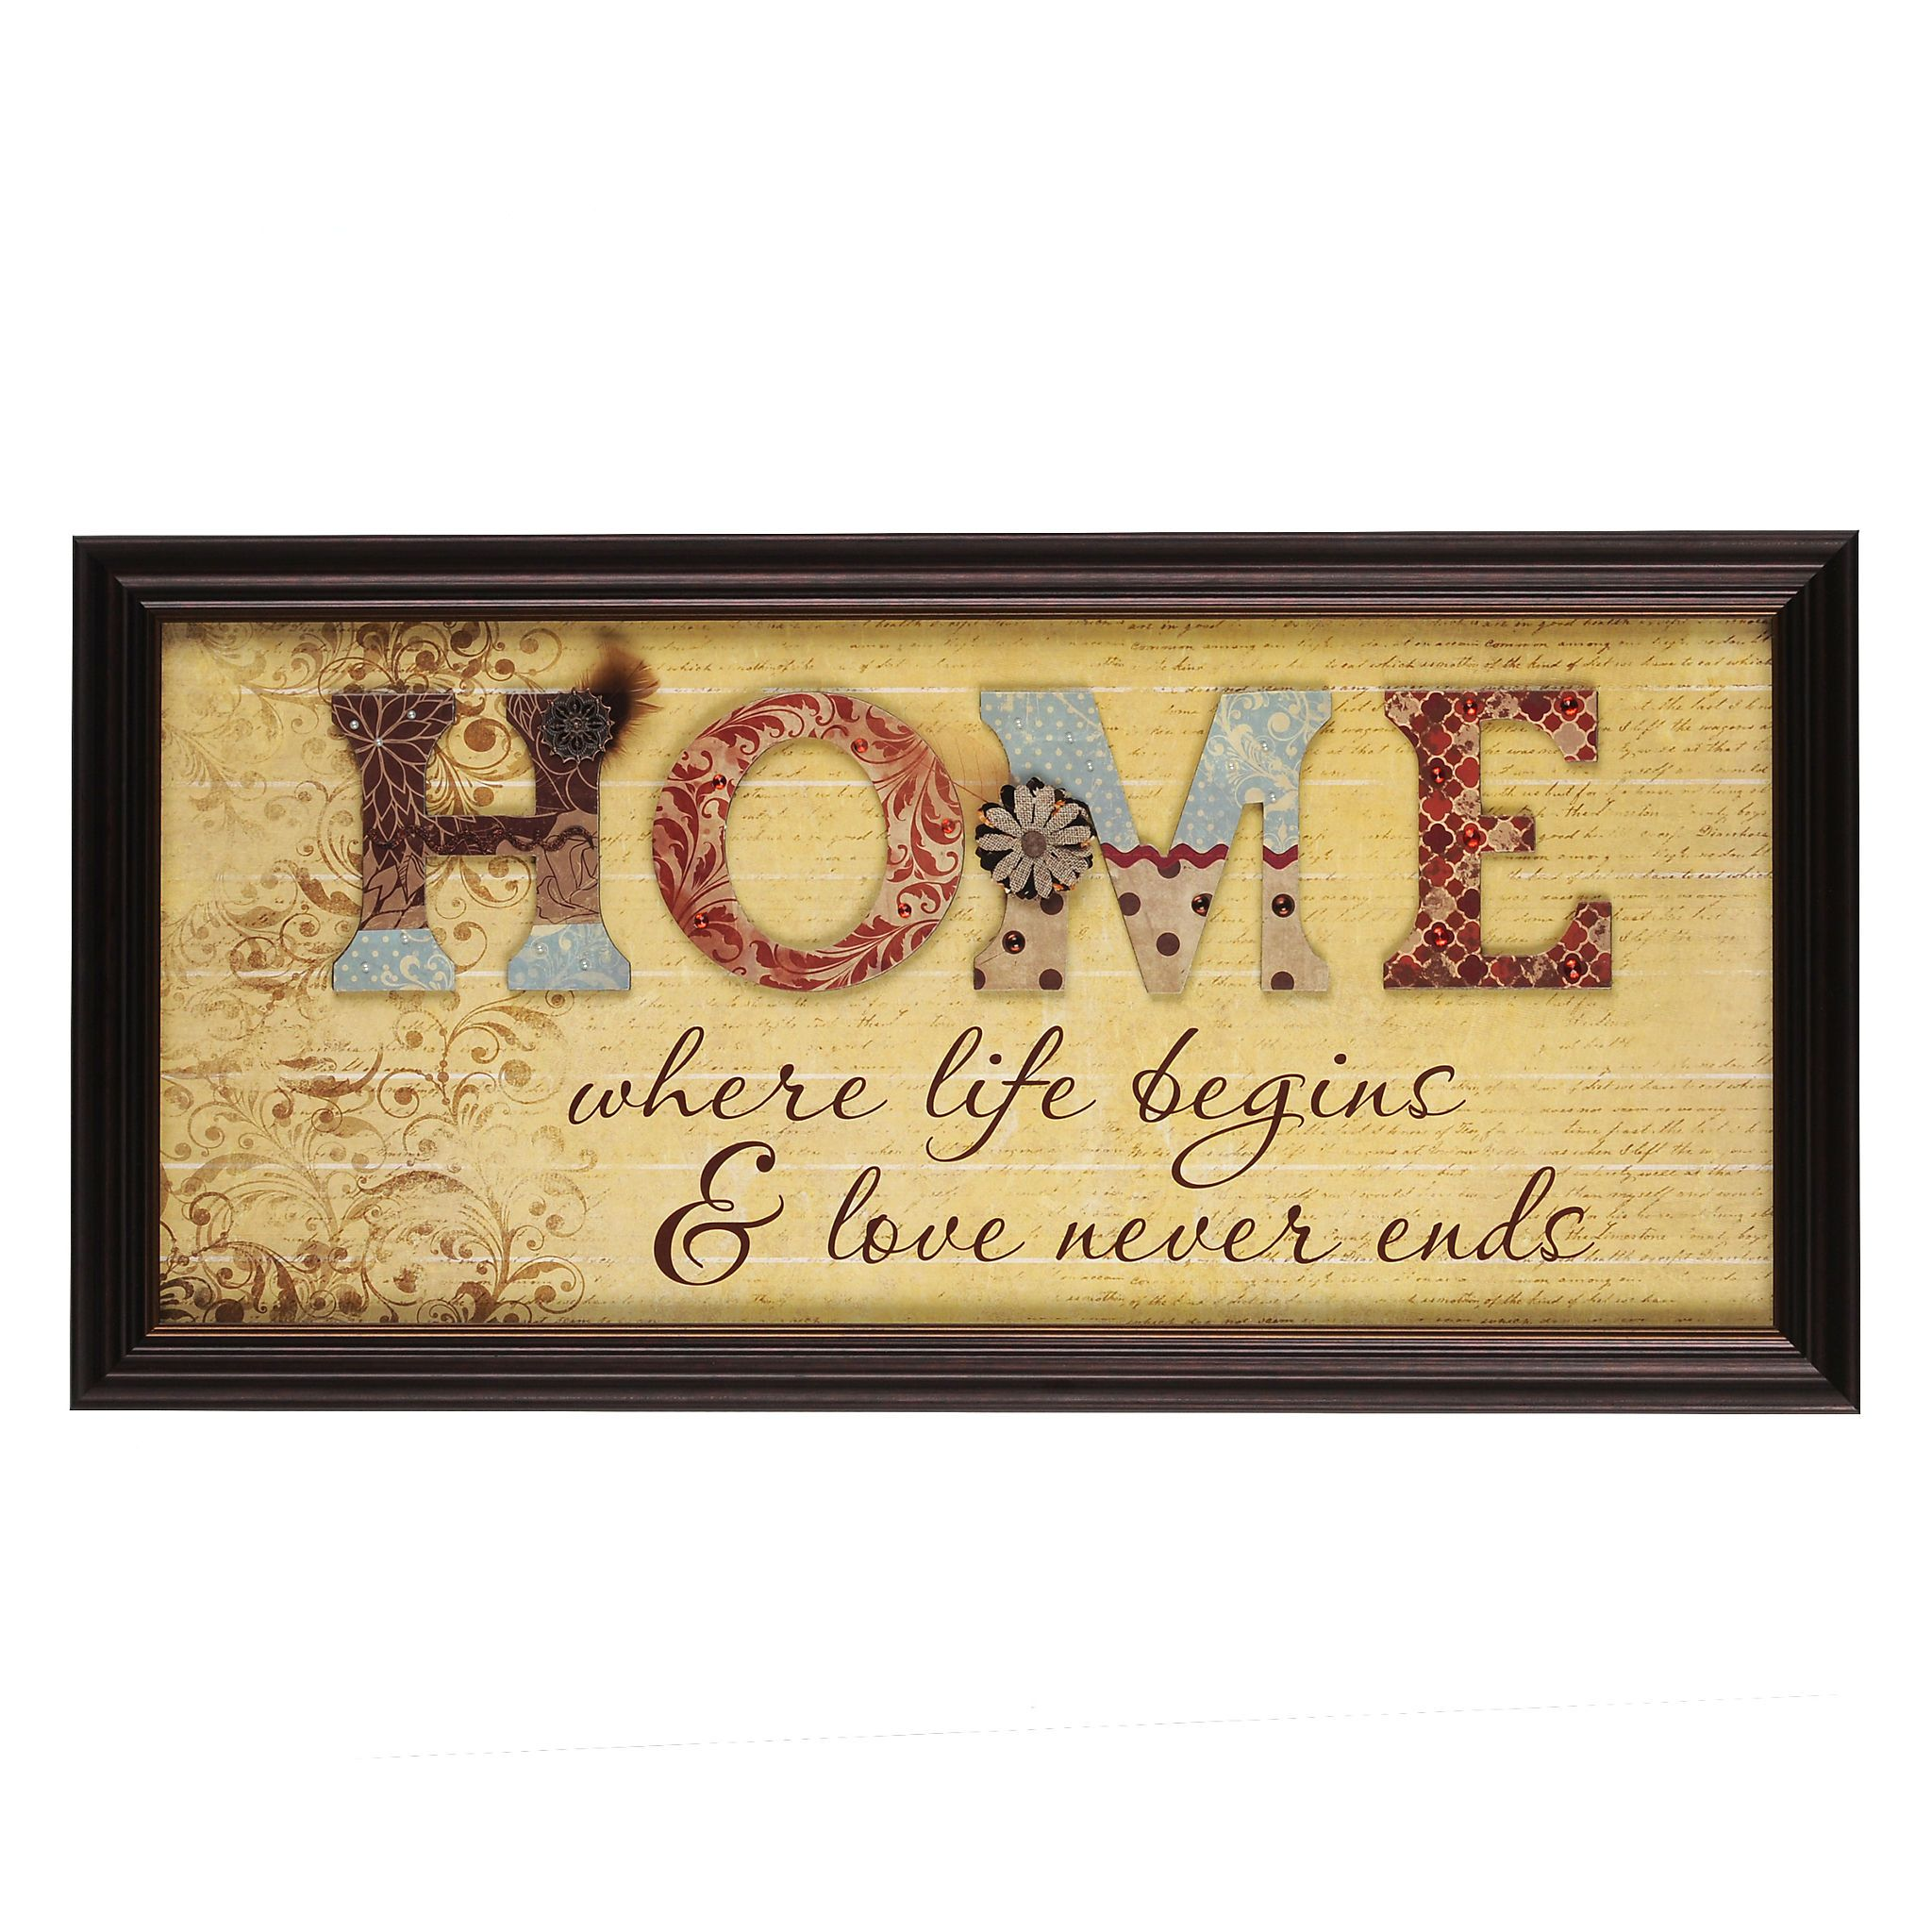 Home Scrapbook Framed Art | Scrapbook frames, Scrapbook and Art walls